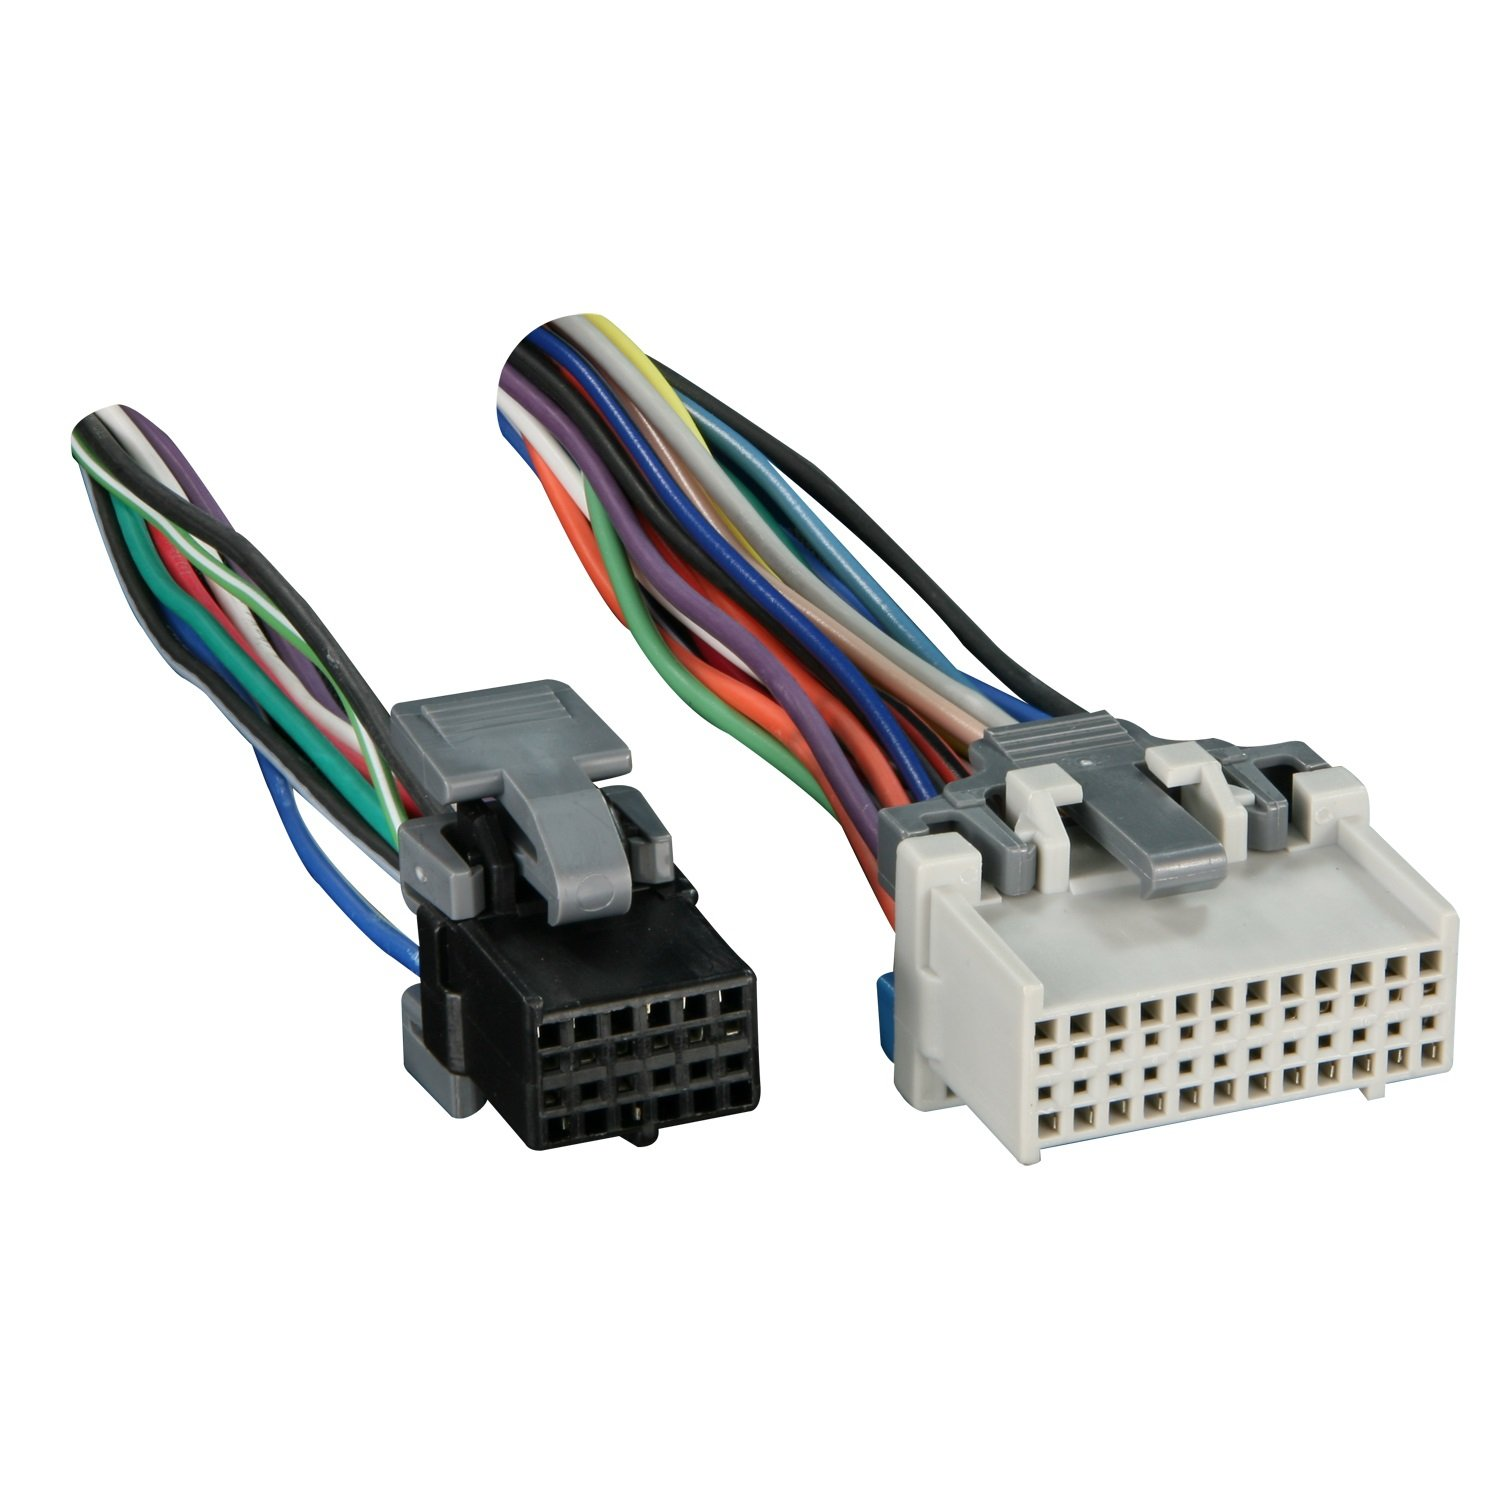 711log4bdML._SL1500_ amazon com metra turbowires 71 2003 1 wiring harness car electronics how much does it cost to replace a wiring harness at virtualis.co